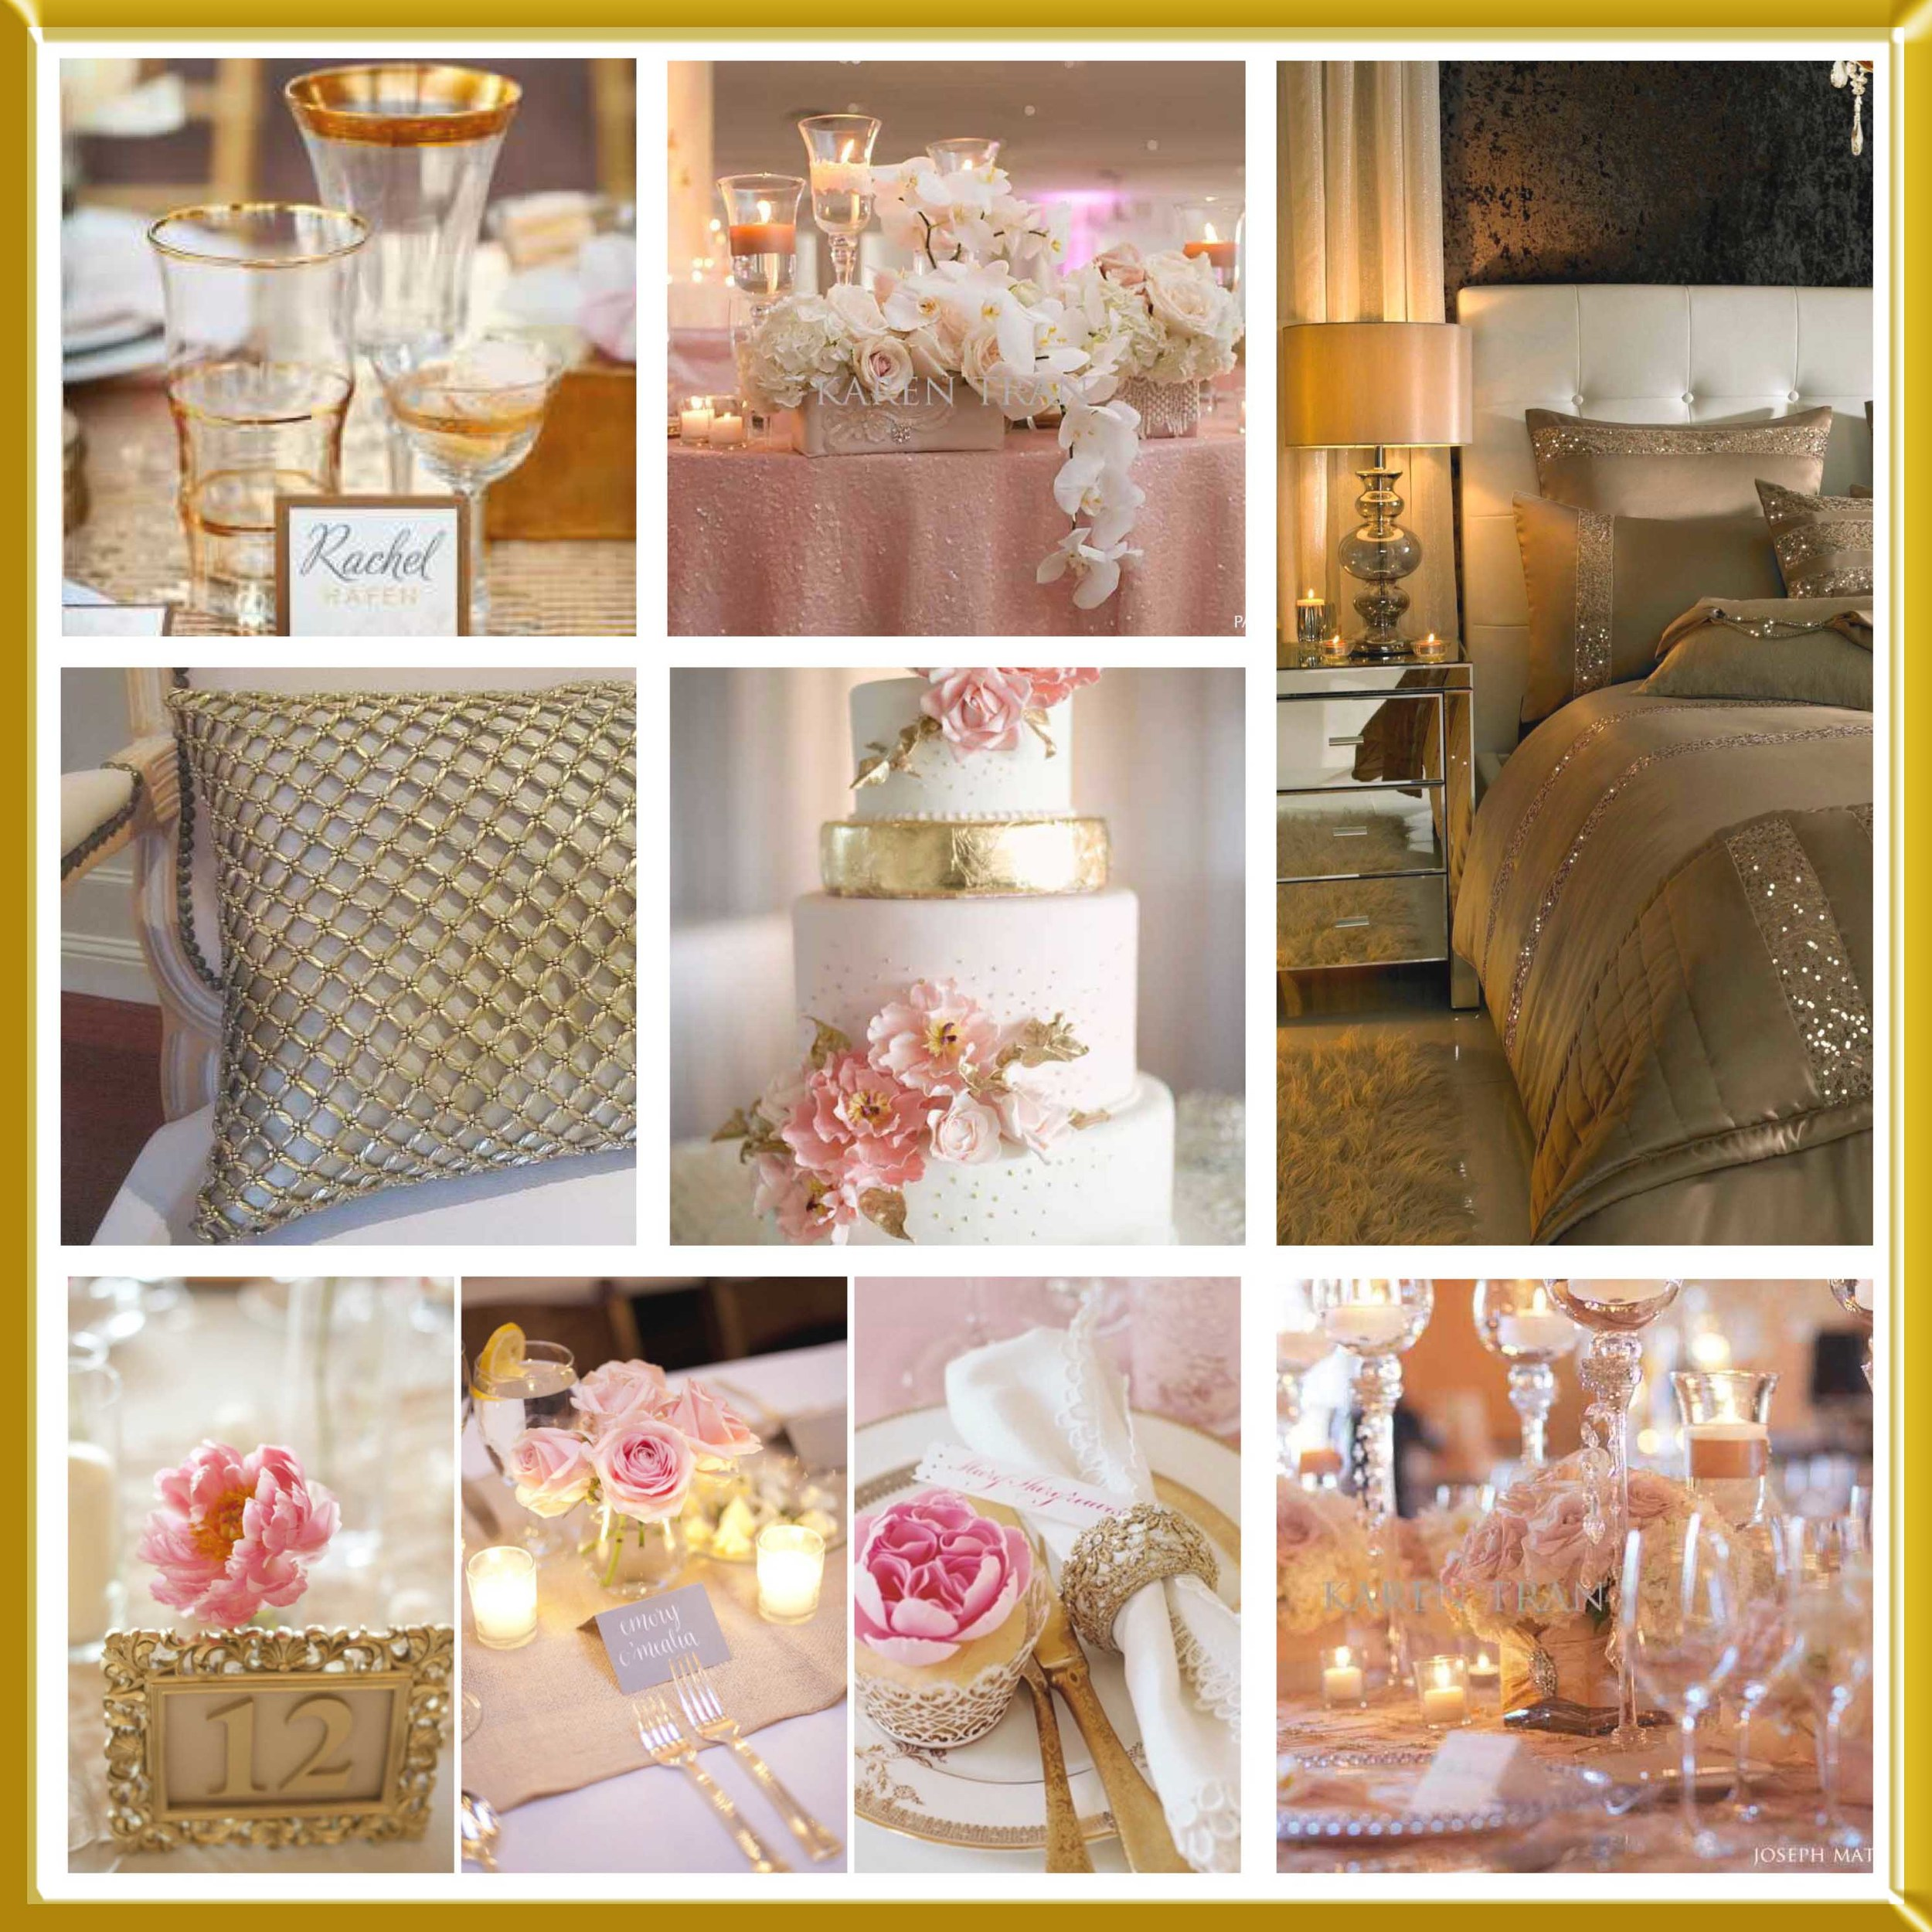 Baby pink and gold wedding inspirational board.